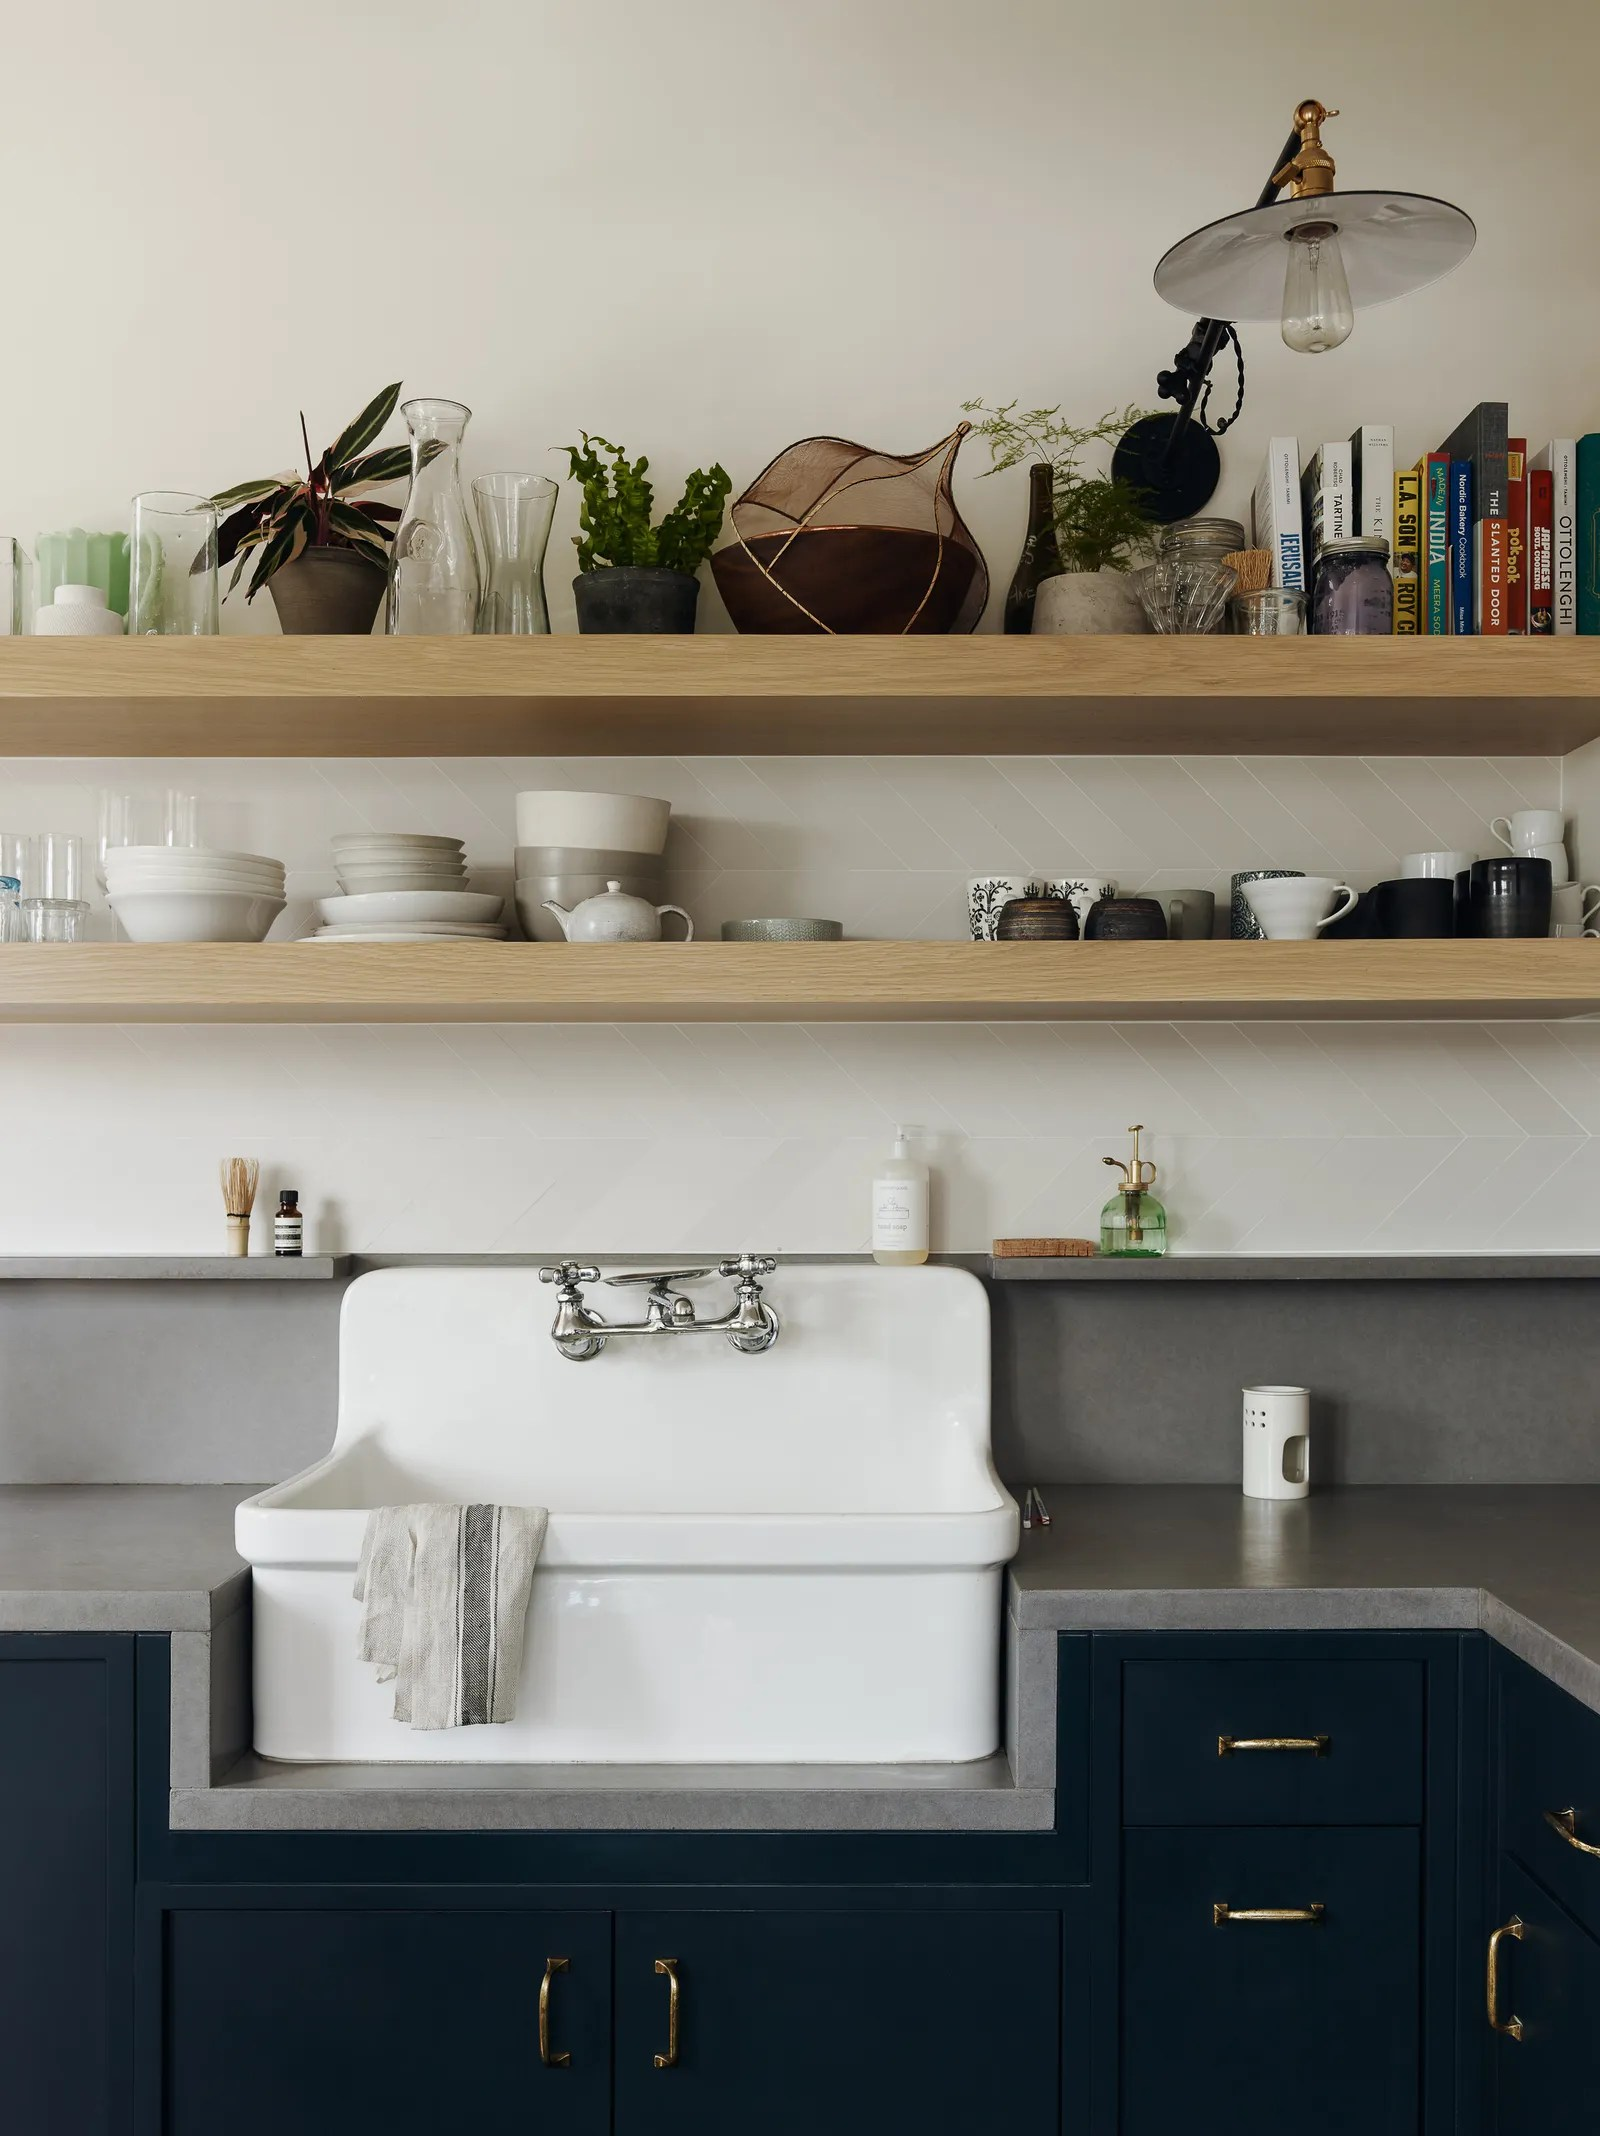 The Best Small Kitchen Design Ideas for Your Tiny Space ... on Best Small Kitchens  id=52083